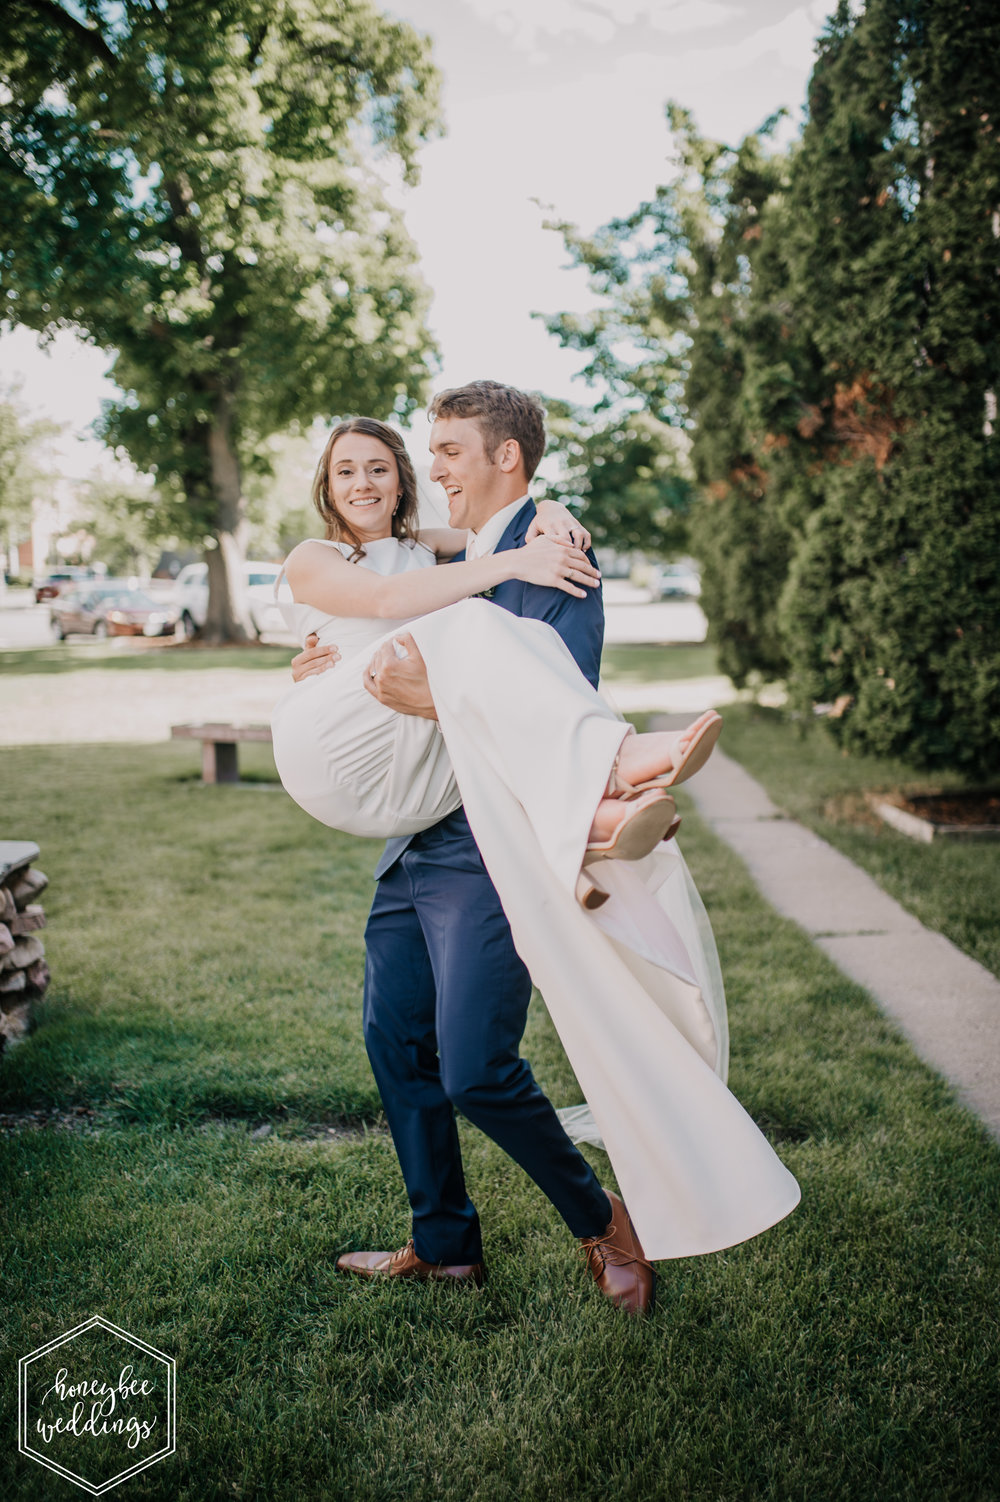 235 Montana Wedding Photographer_St. Francis Wedding_Tifani Zanto + Ryan Burke -6893.jpg